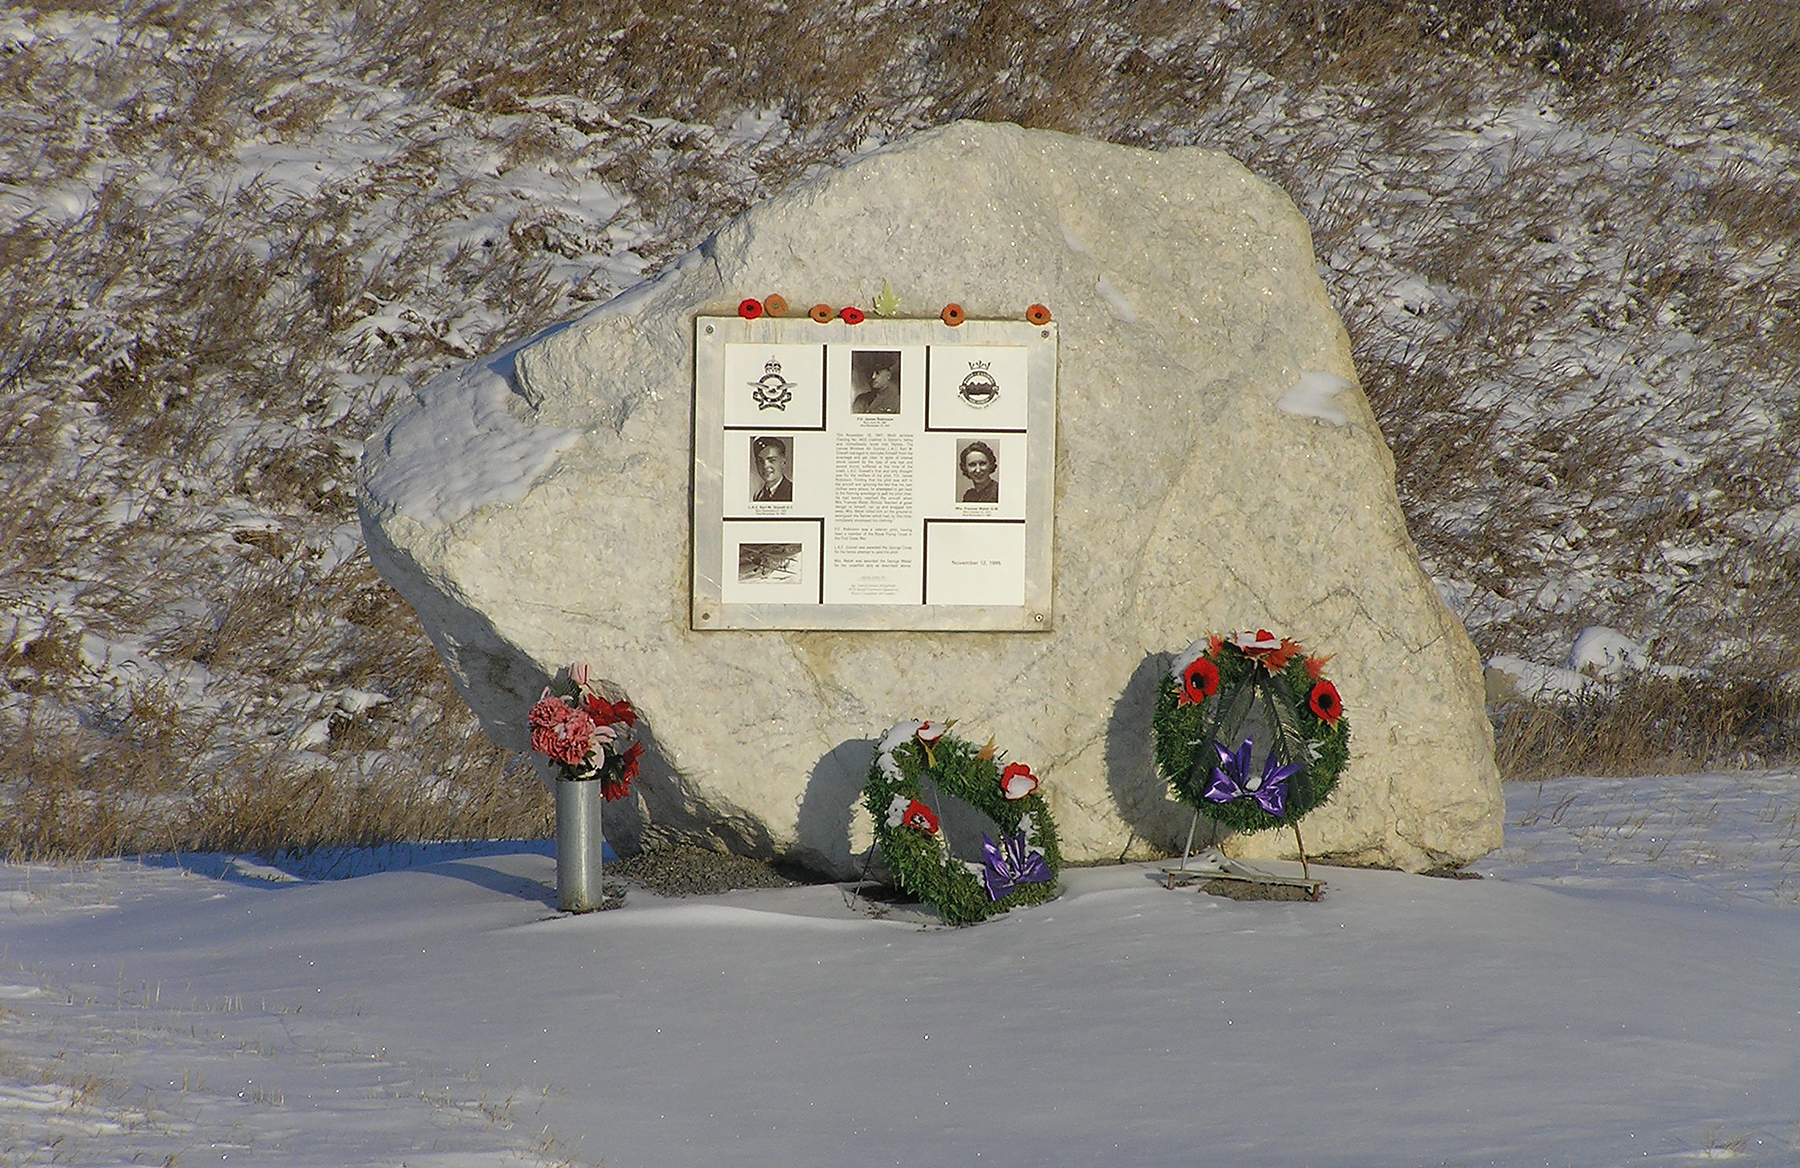 In 1995, through the efforts of 18-year-old air cadet Sergeant Daniel Fitzgerald, a Memorial was placed near the site of the November 10, 1941, crash of a Moth training aircraft near Simmonds Valley, Alberta. The plaque honours the pilot of the aircraft, Flying Officer James Robinson (top), who died in the crash; his student pilot, Leading Aircraftman Karl Gravell, from No. 2 Wireless School, who died about four hours after the crash; and Ms Frances Walsh, a teacher who left her classroom and ran to the nearby crash site in an attempt to save the gravely injured Gravell who was trying to rescue his pilot. PHOTO: Submitted